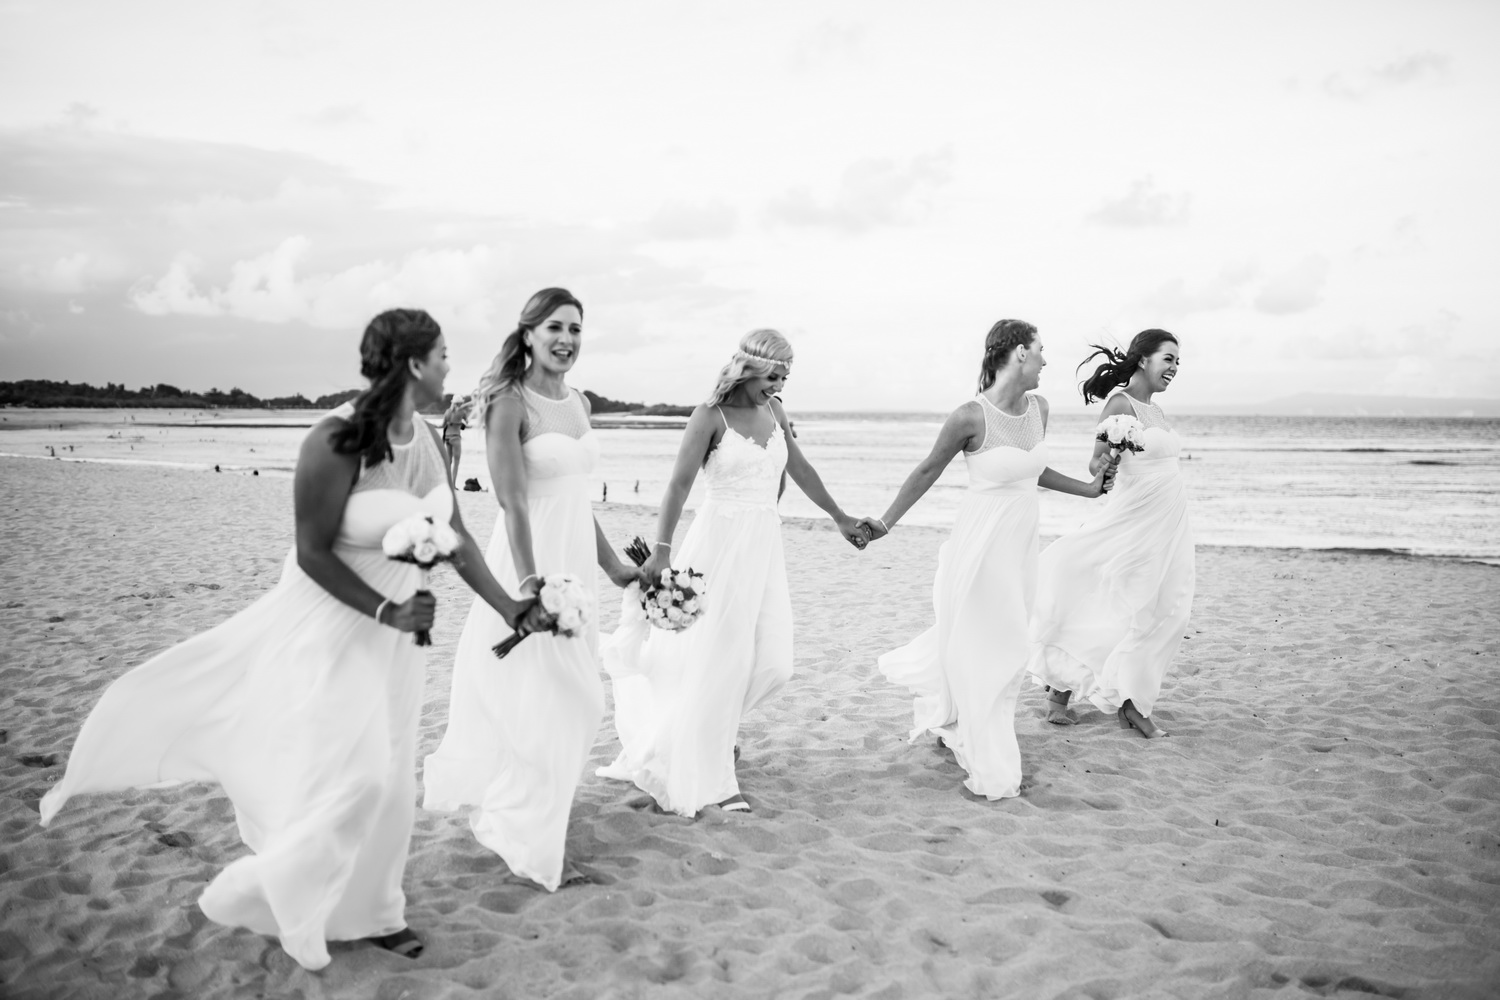 Beach Weddings - We can plan beach weddings overlooking the white sand where palm trees sway in the breeze, and tropical flowers ramble.